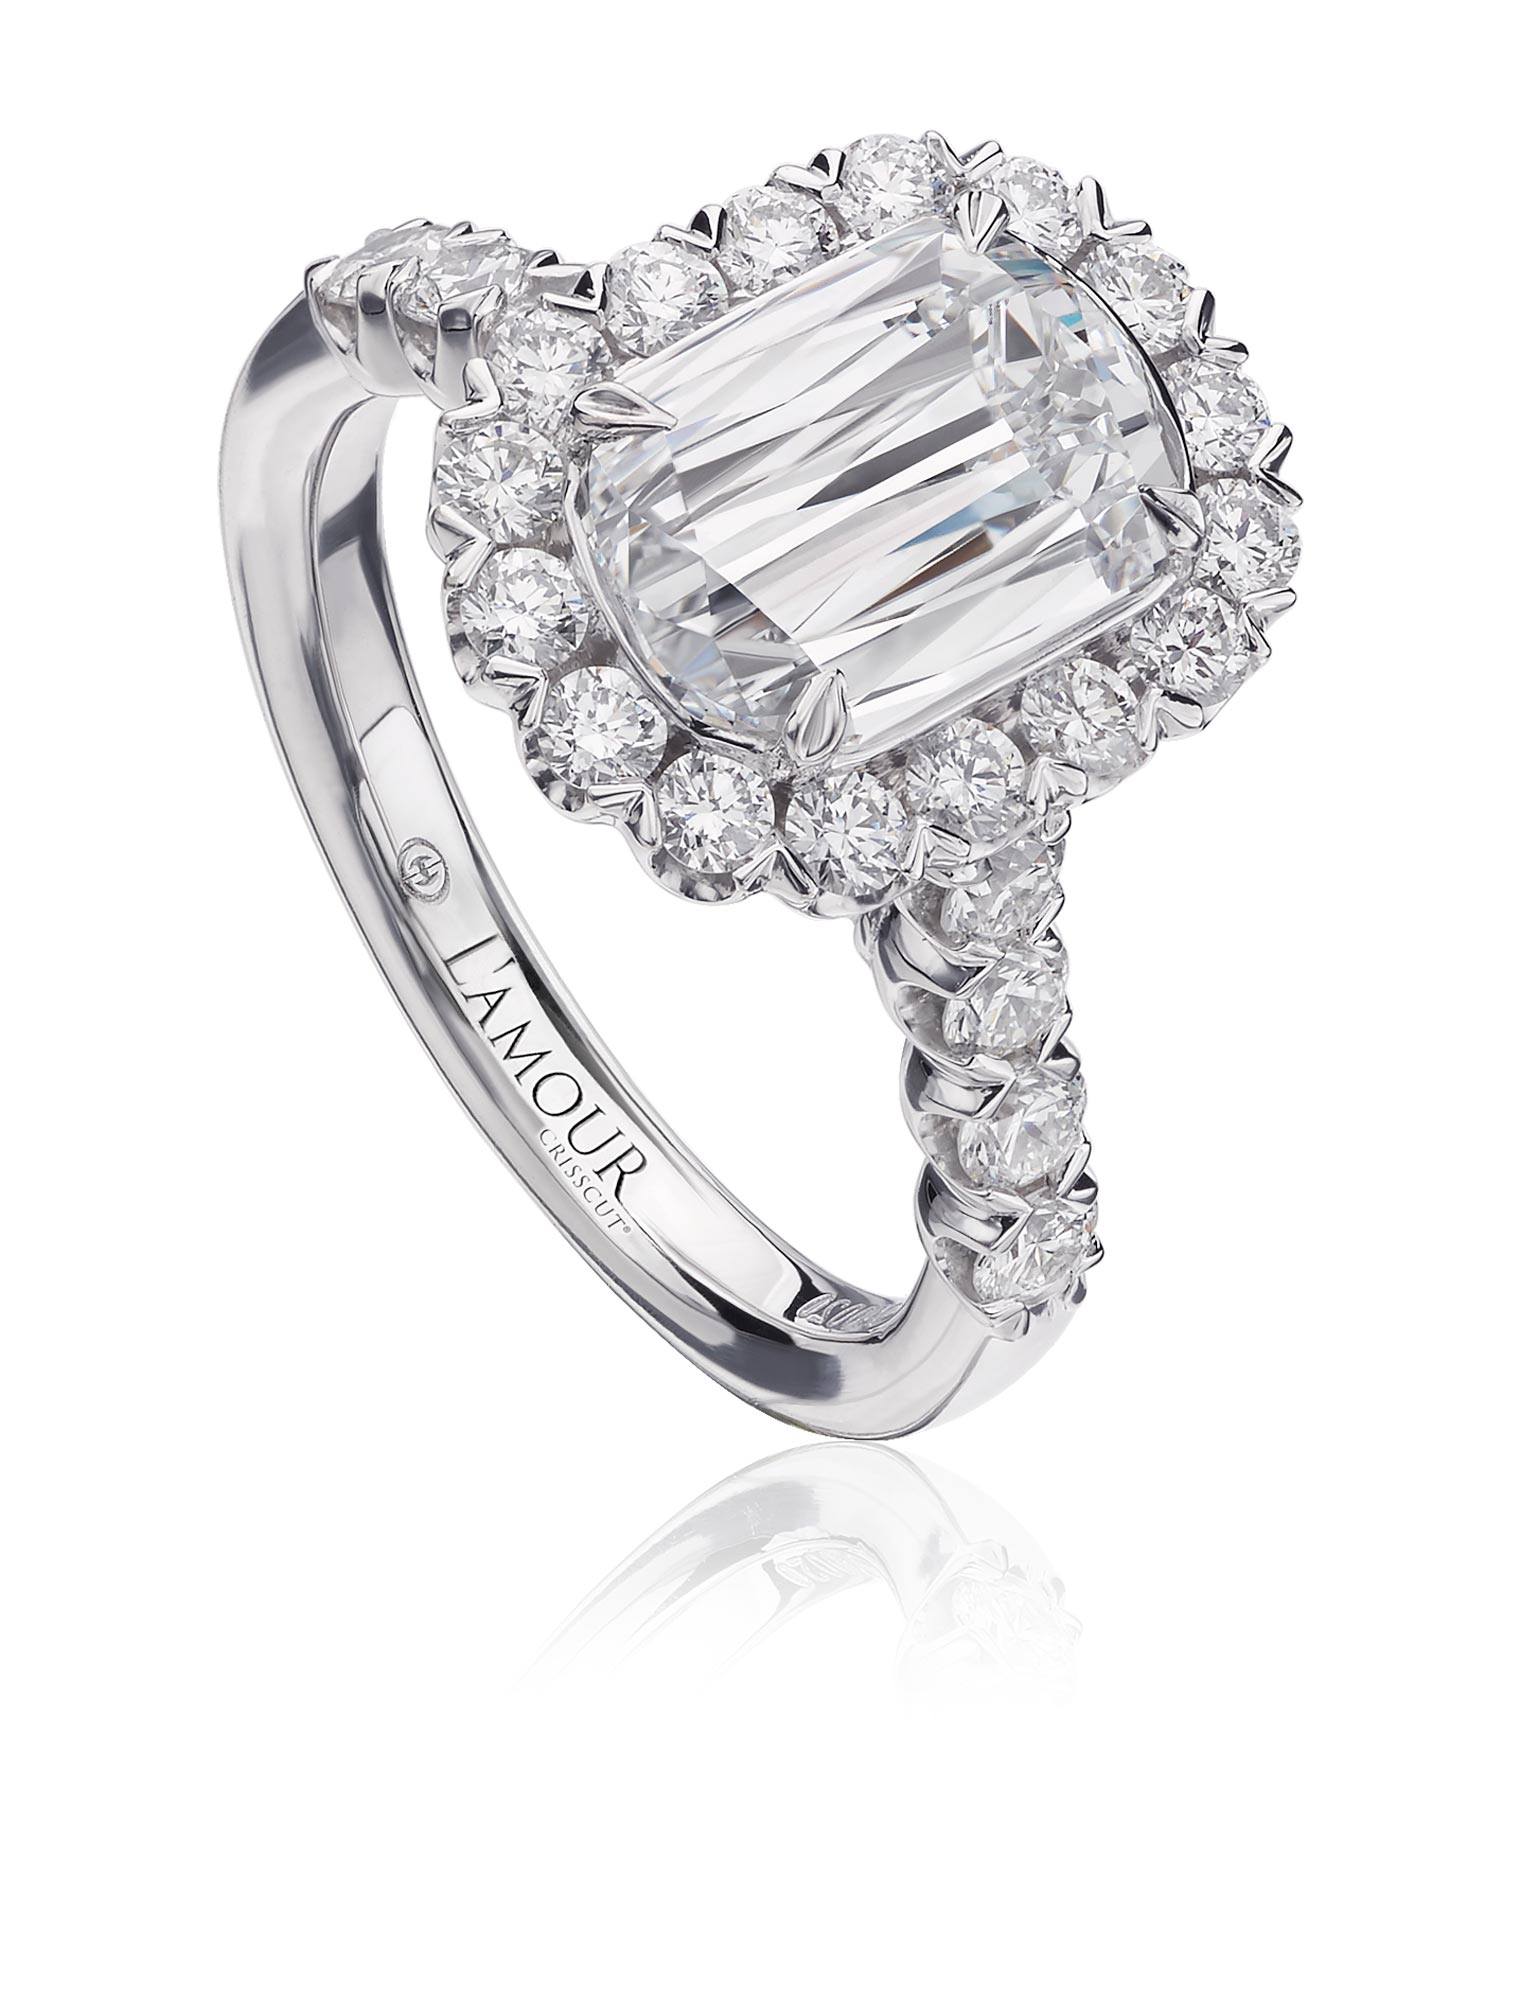 Simple Engagement Ring With Halo And Round Cut Diamonds L101 200 Halo Crisscut Diamond Jewelry